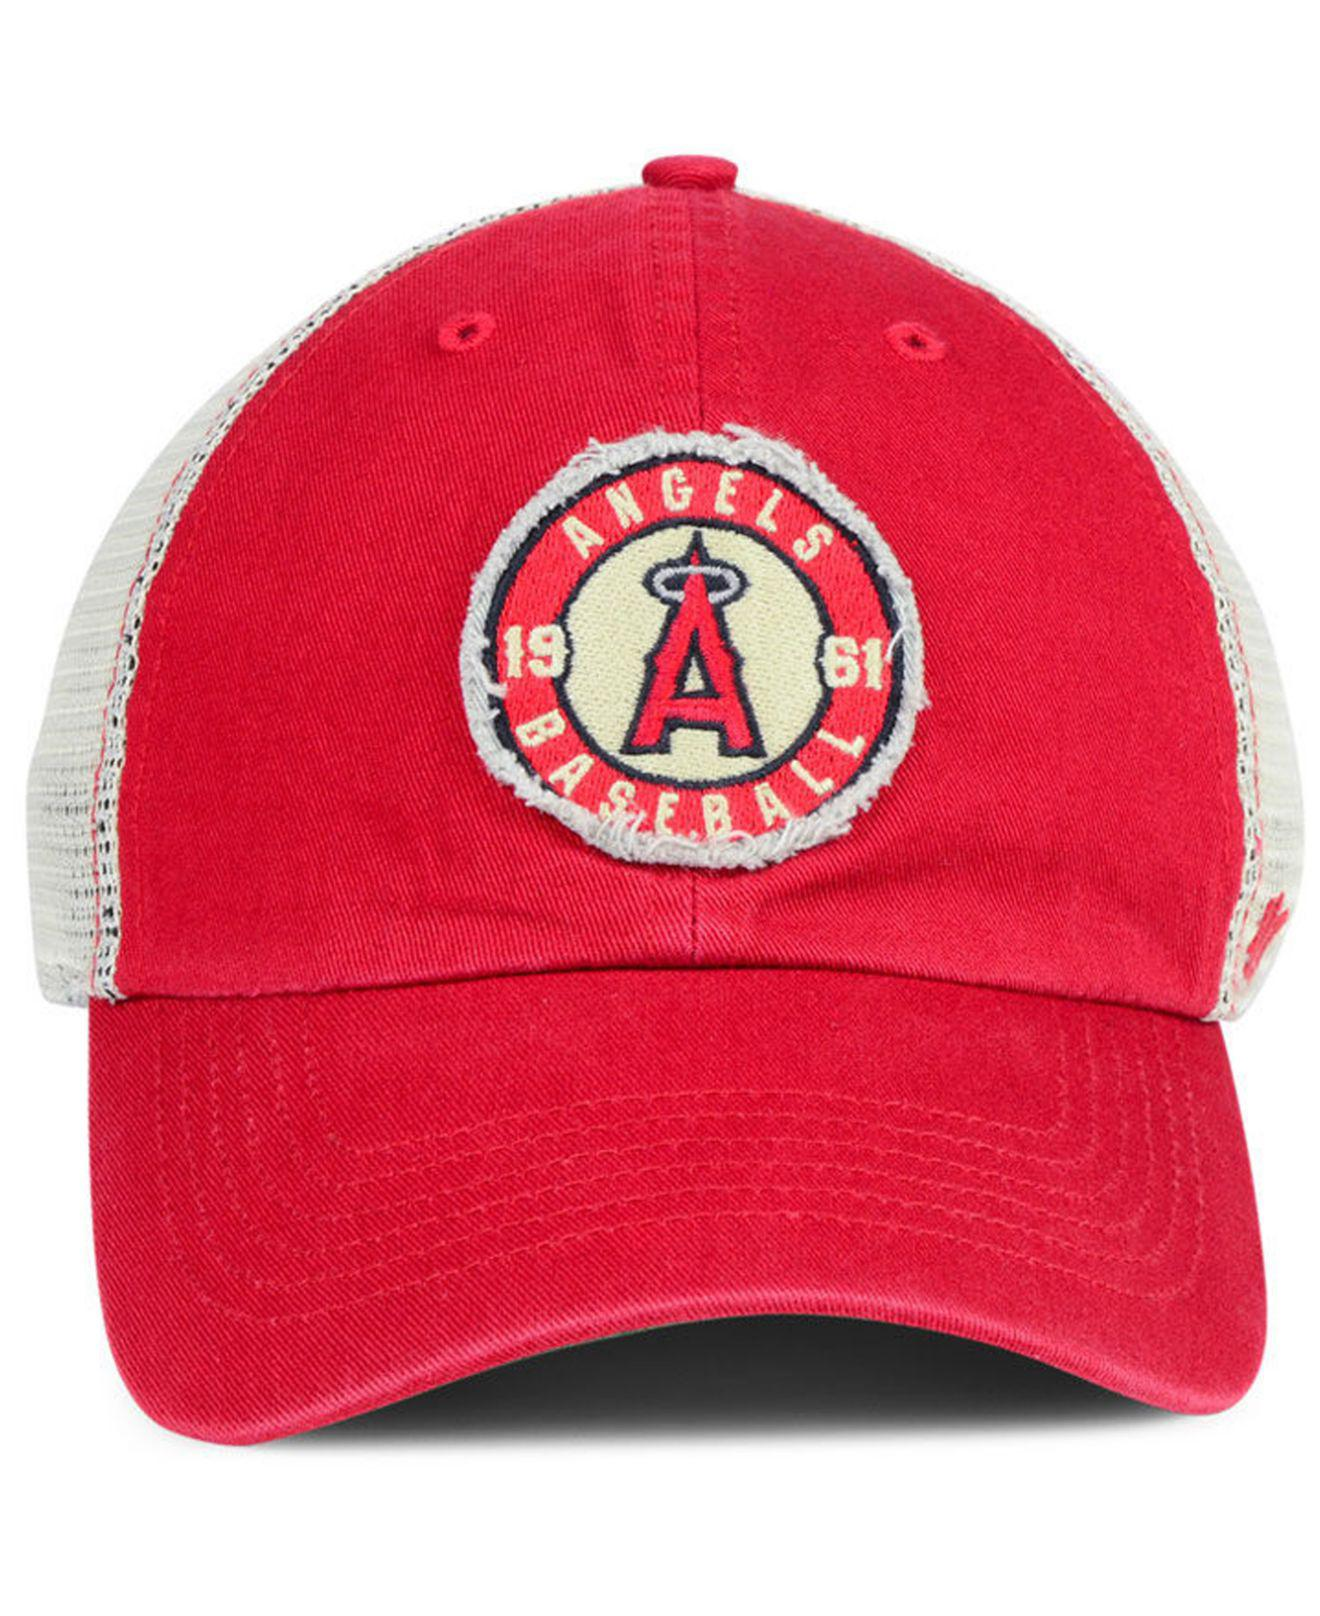 buy online a37ab 8dc33 ... hot lyst 47 brand los angeles angels tally closer stretch fitted cap in  red for men